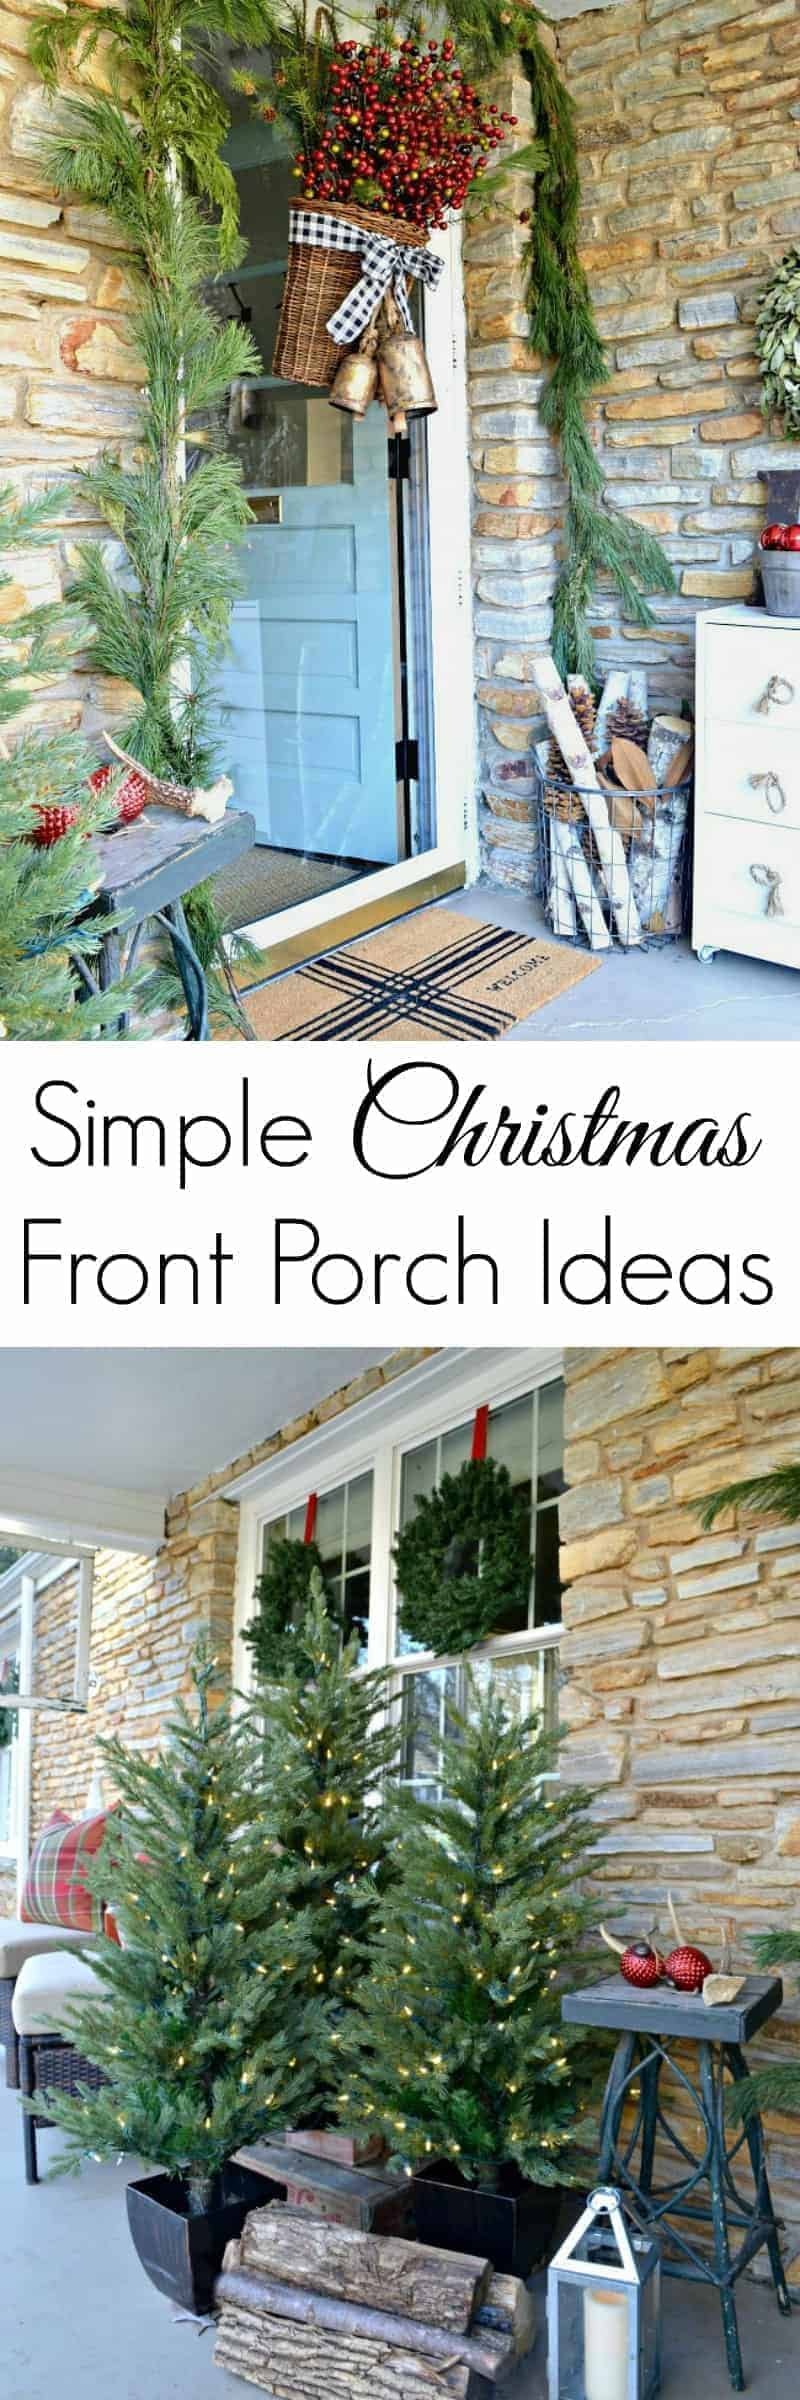 Love these rustic and simple Christmas front porch ideas to help you decorate your outdoor space for the holidays.